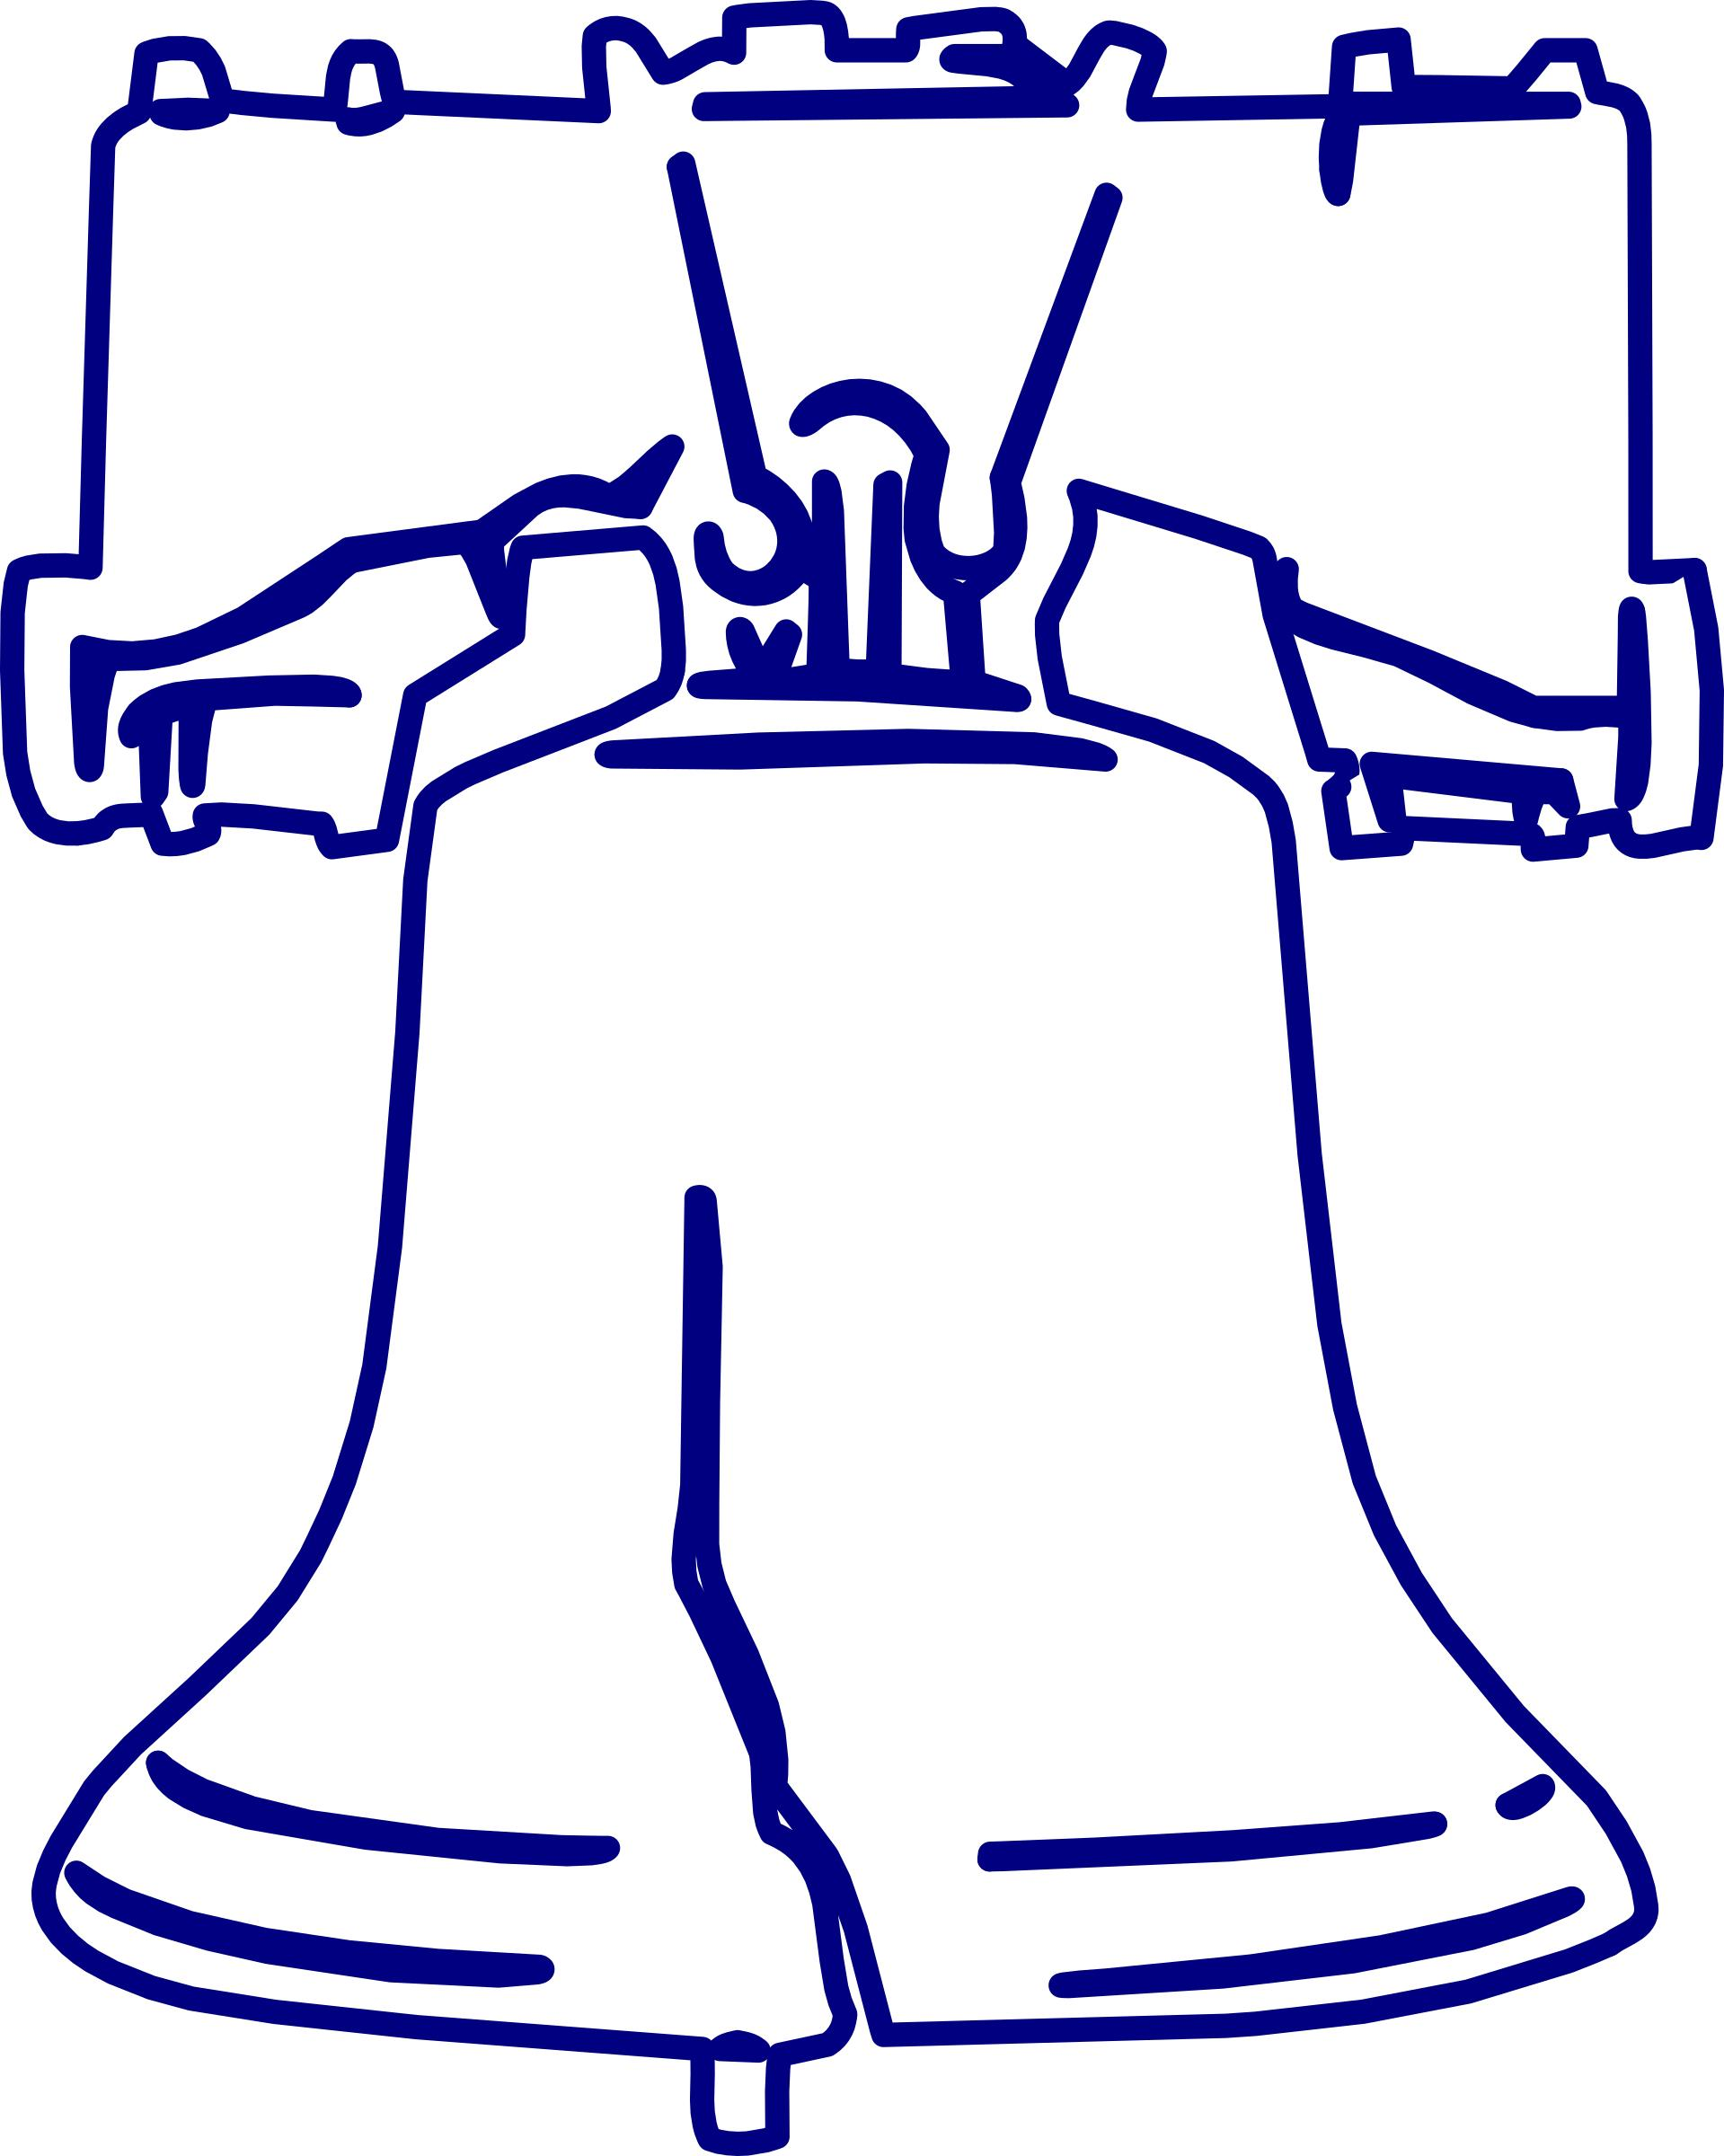 liberty bell silhouette at getdrawings com free for personal use rh getdrawings com liberty bell clipart free